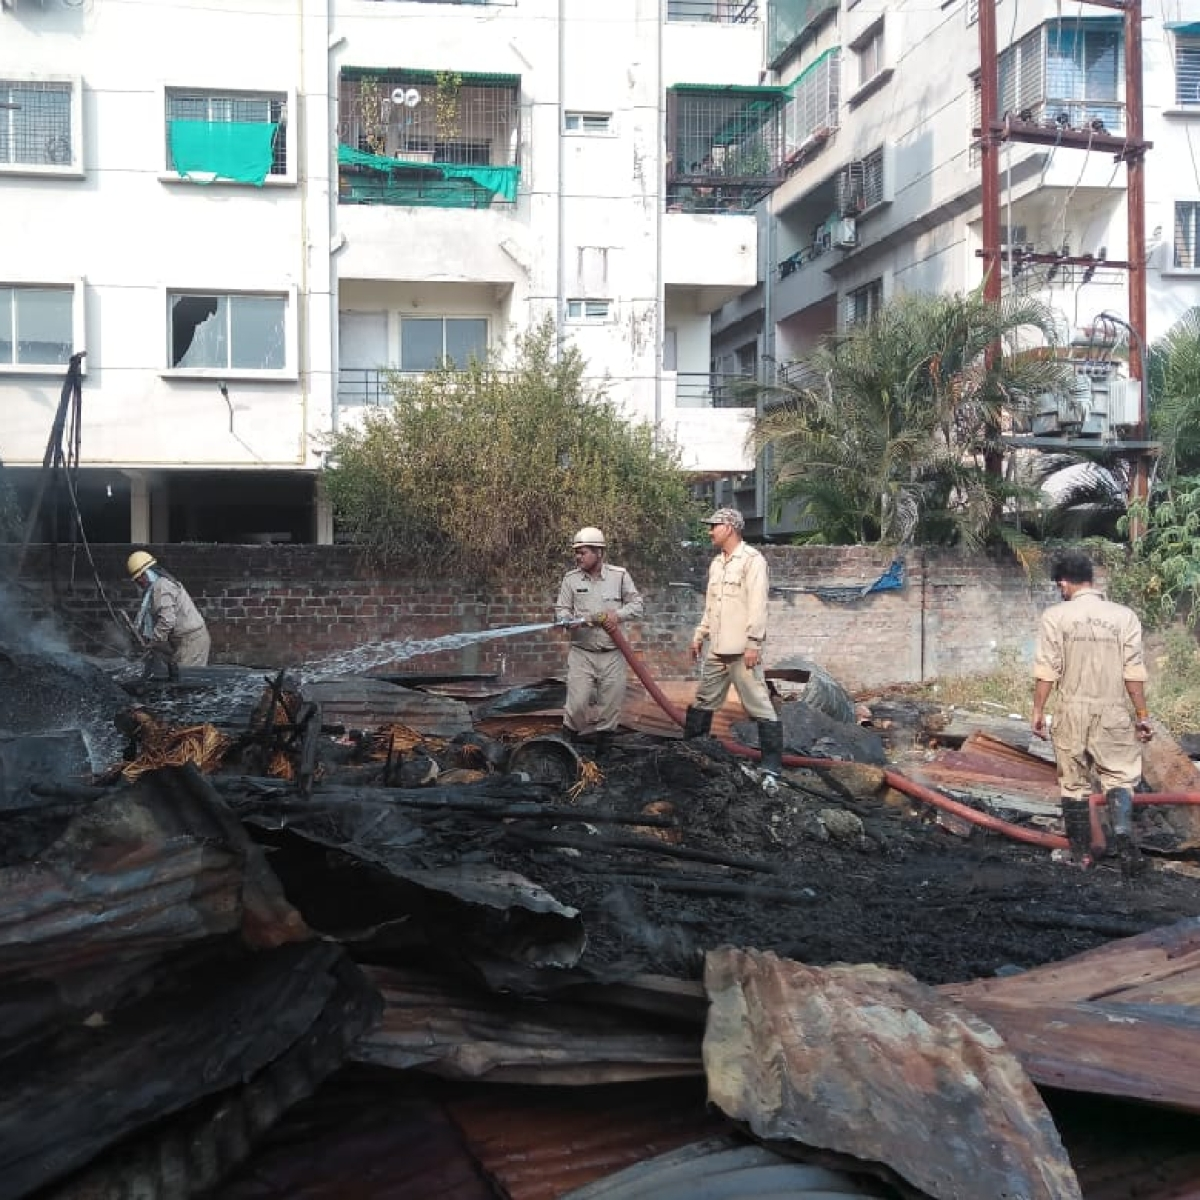 Indore: Idols gutted in fire at godown near Kanadiya Road